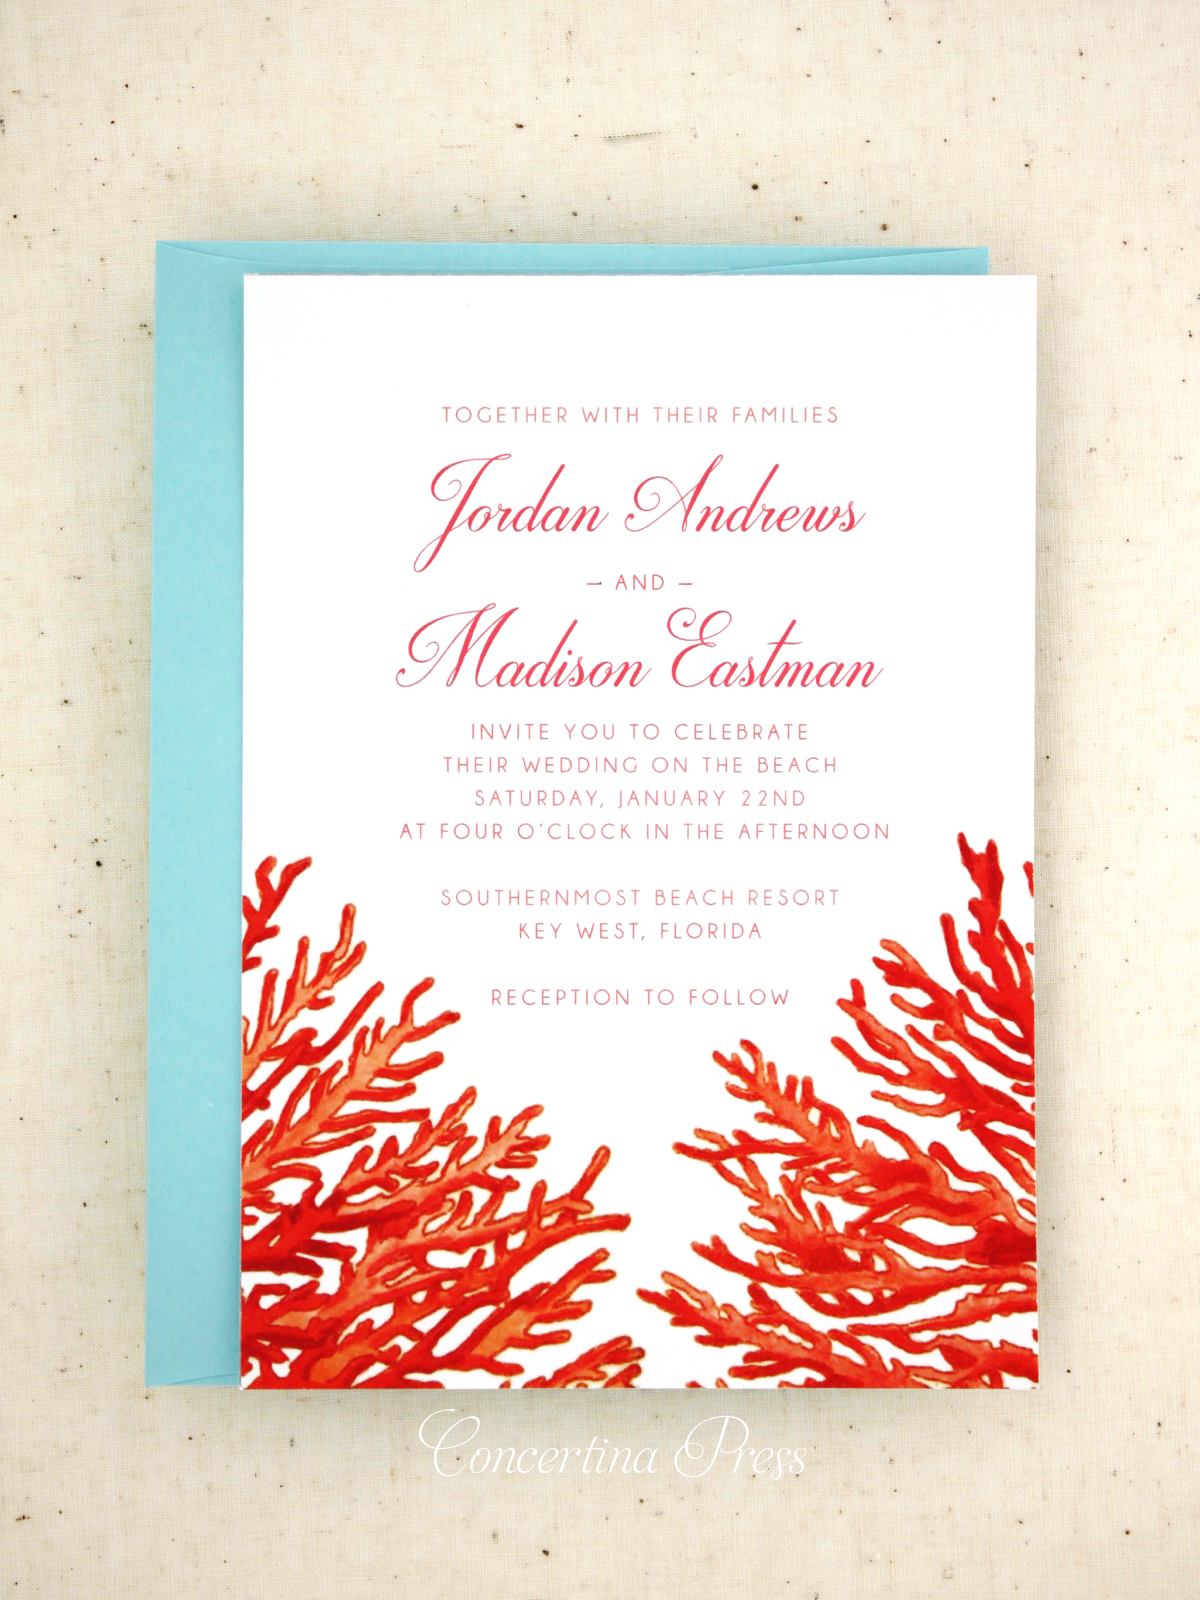 Southernmost Beach Resort Destination Wedding in Key West Florida Invitations